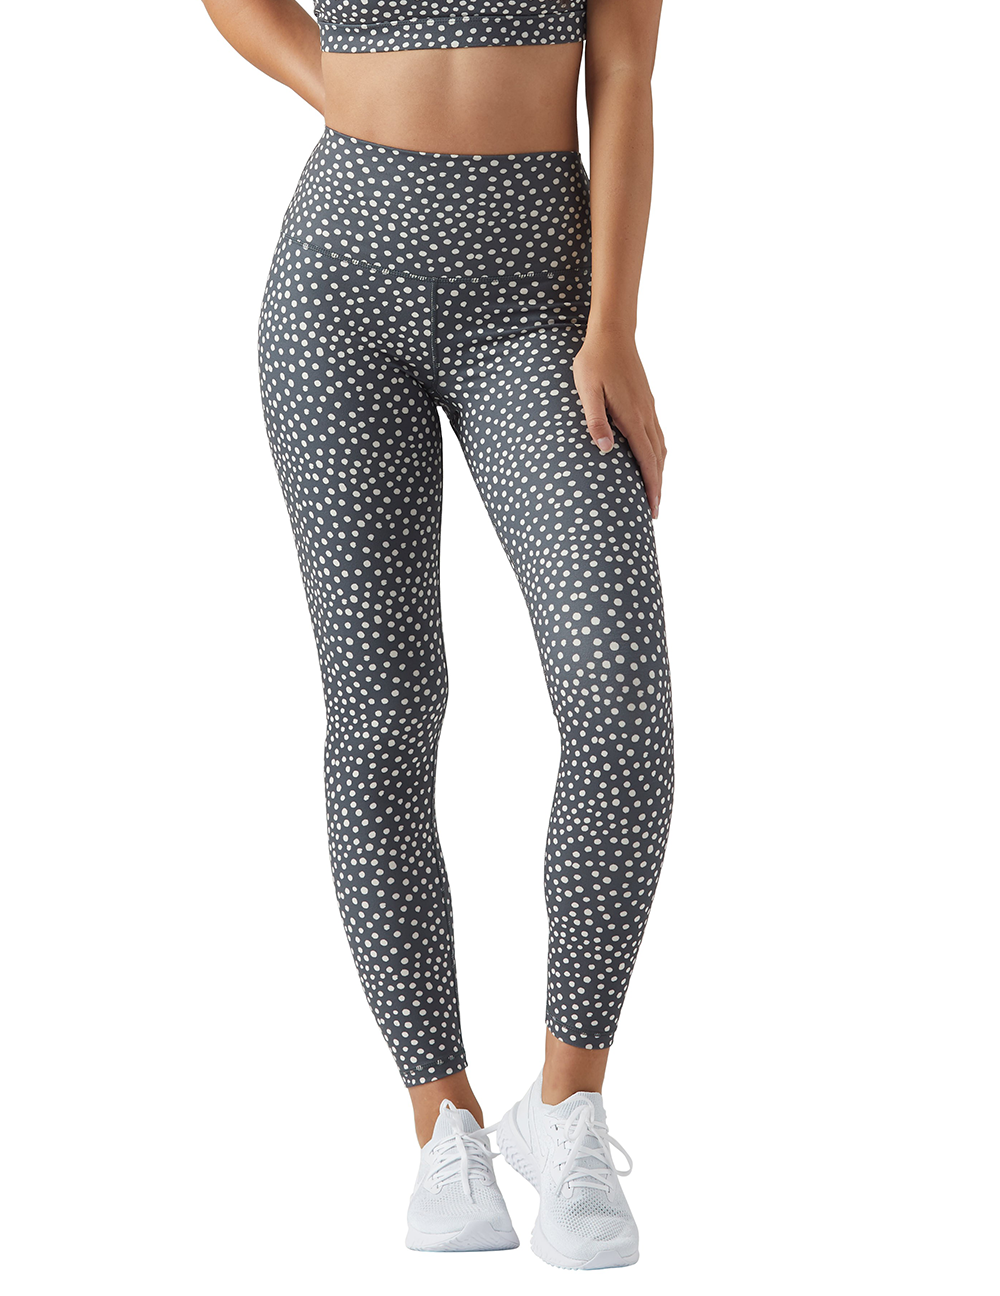 High Power Legging: Spotted Vintage Black